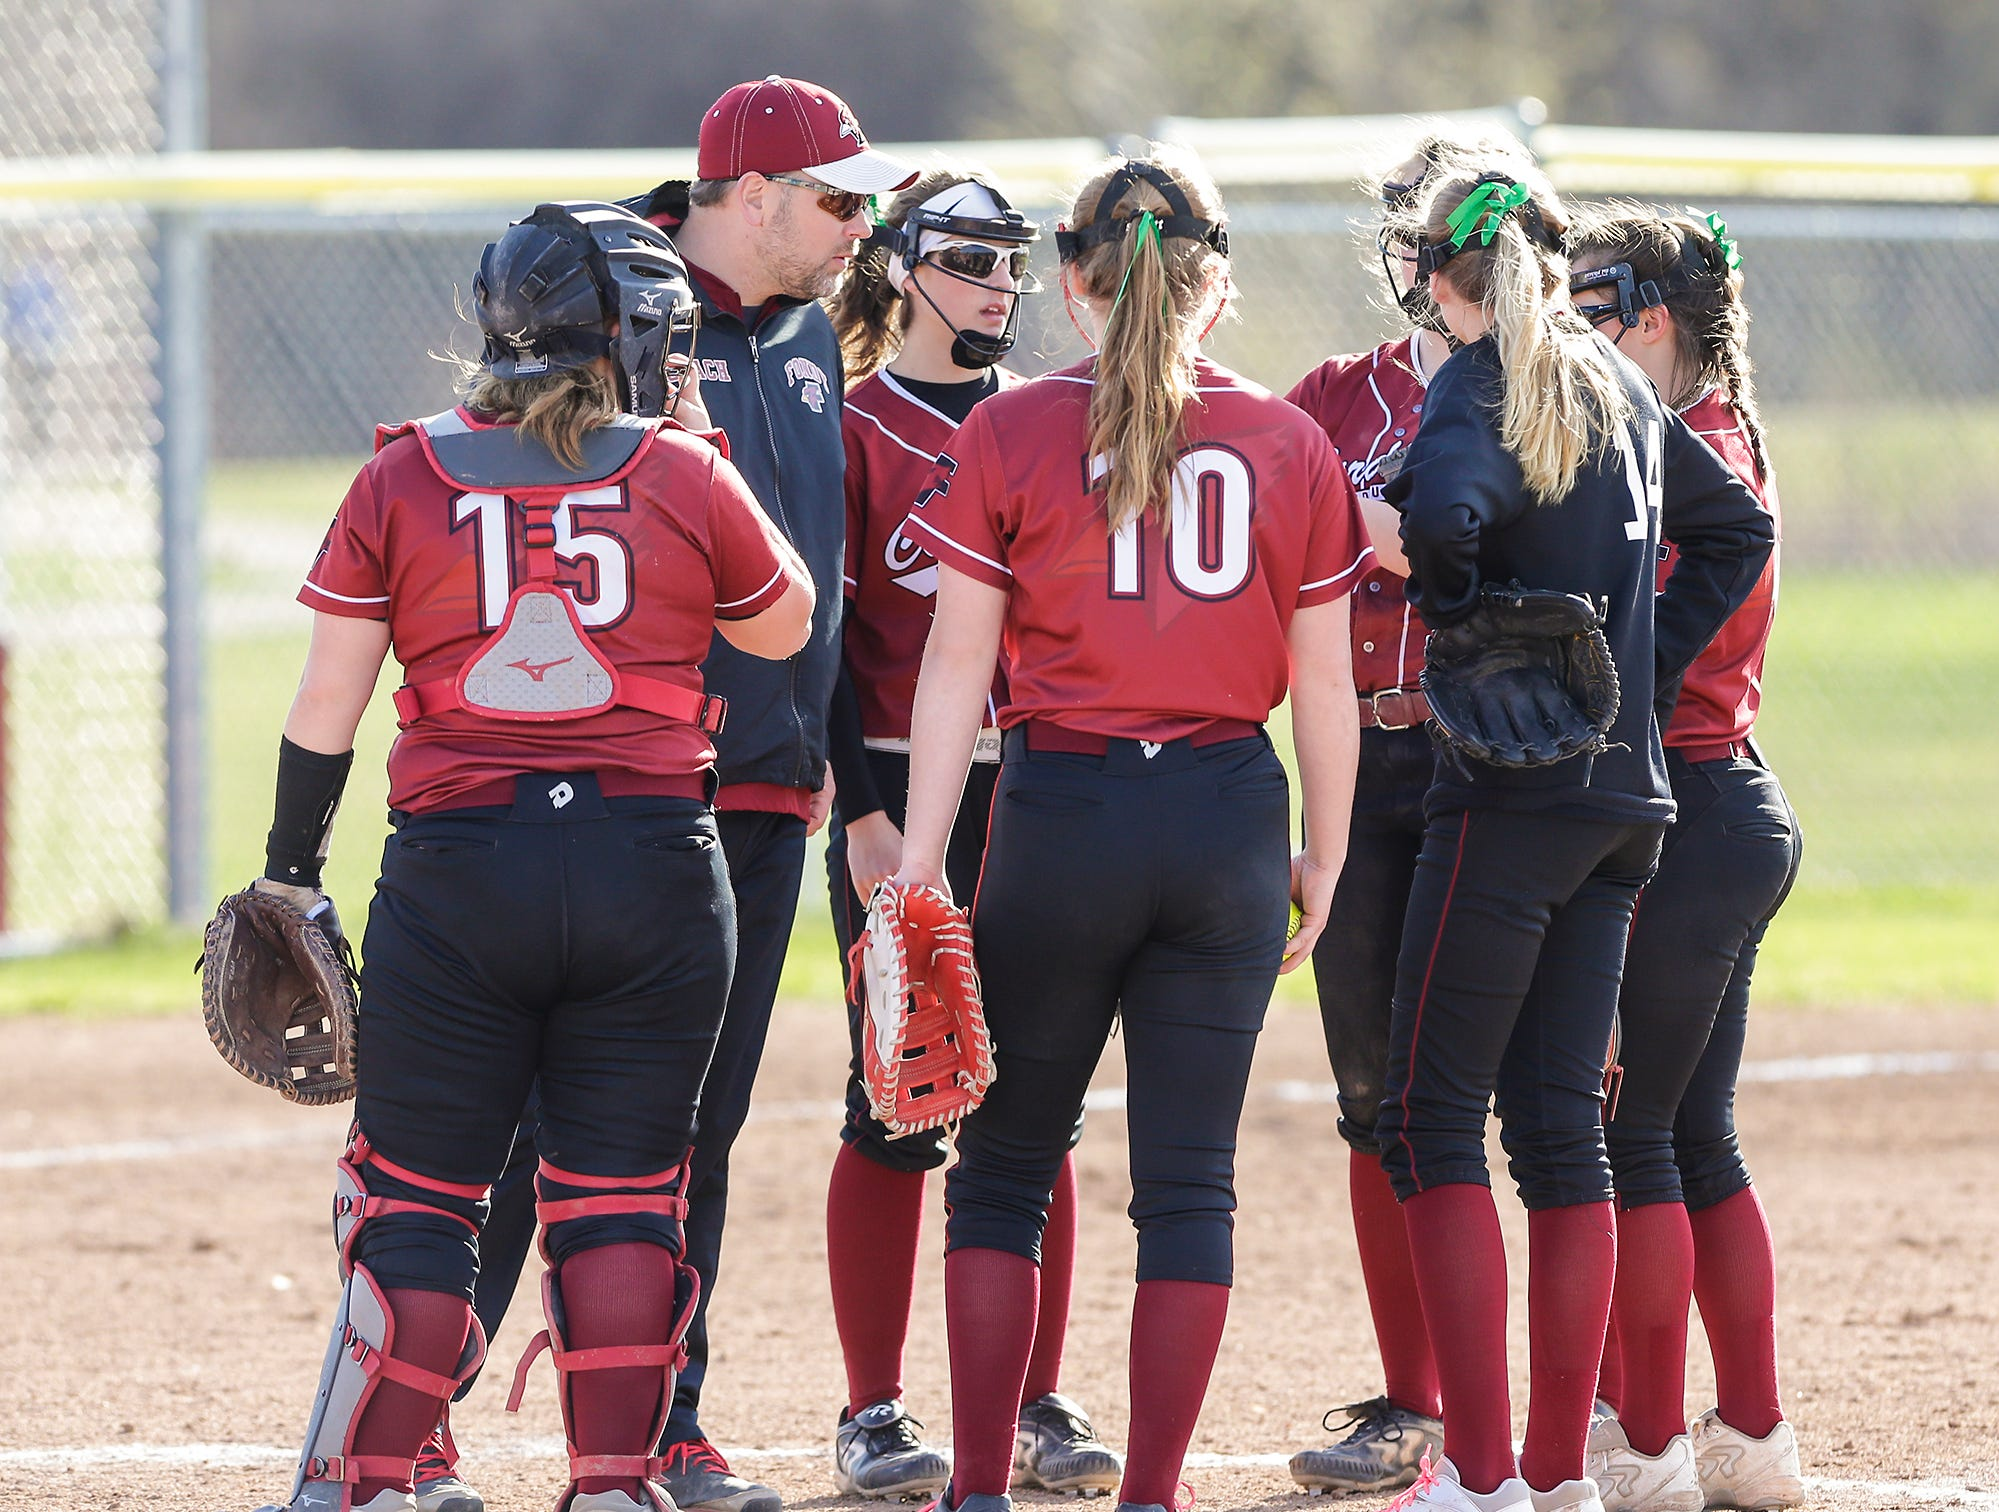 Fond du Lac High School softball's coach Adam Rushing talks with members of his team during their game against Oshkosh North High School  Friday, April 26, 2019 in Fond du Lac, Wis. Doug Raflik/USA TODAY NETWORK-Wisconsin